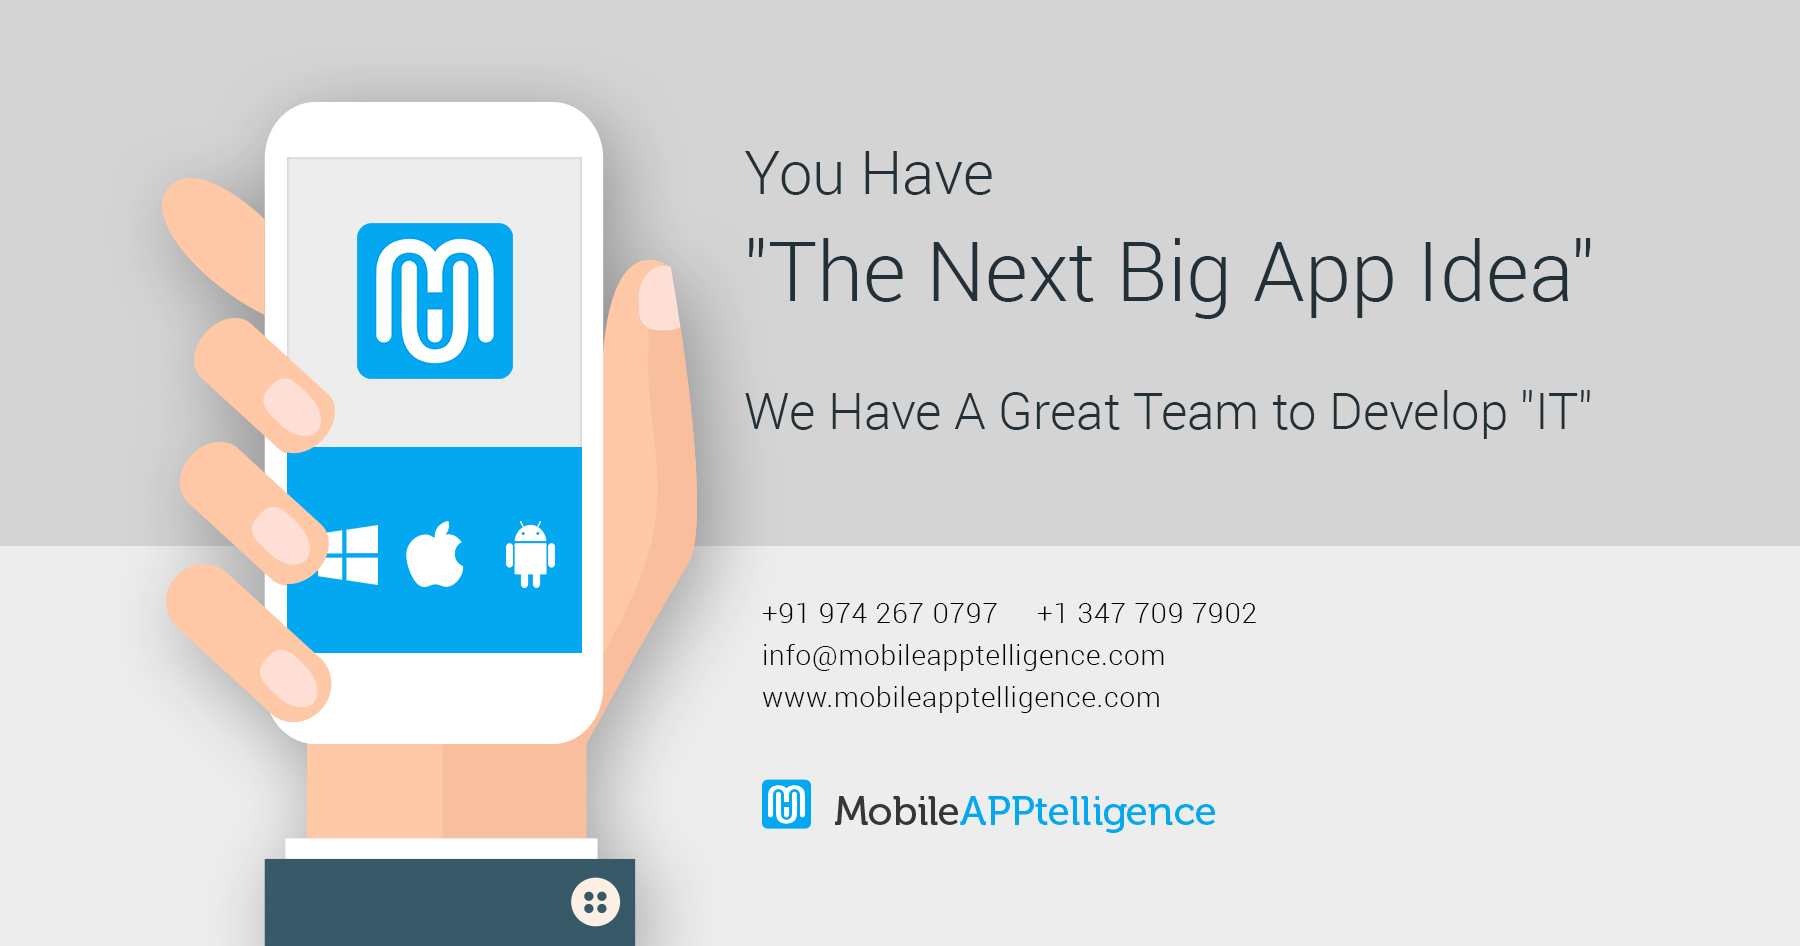 Agencies / DMCs are going for Travel App Development to